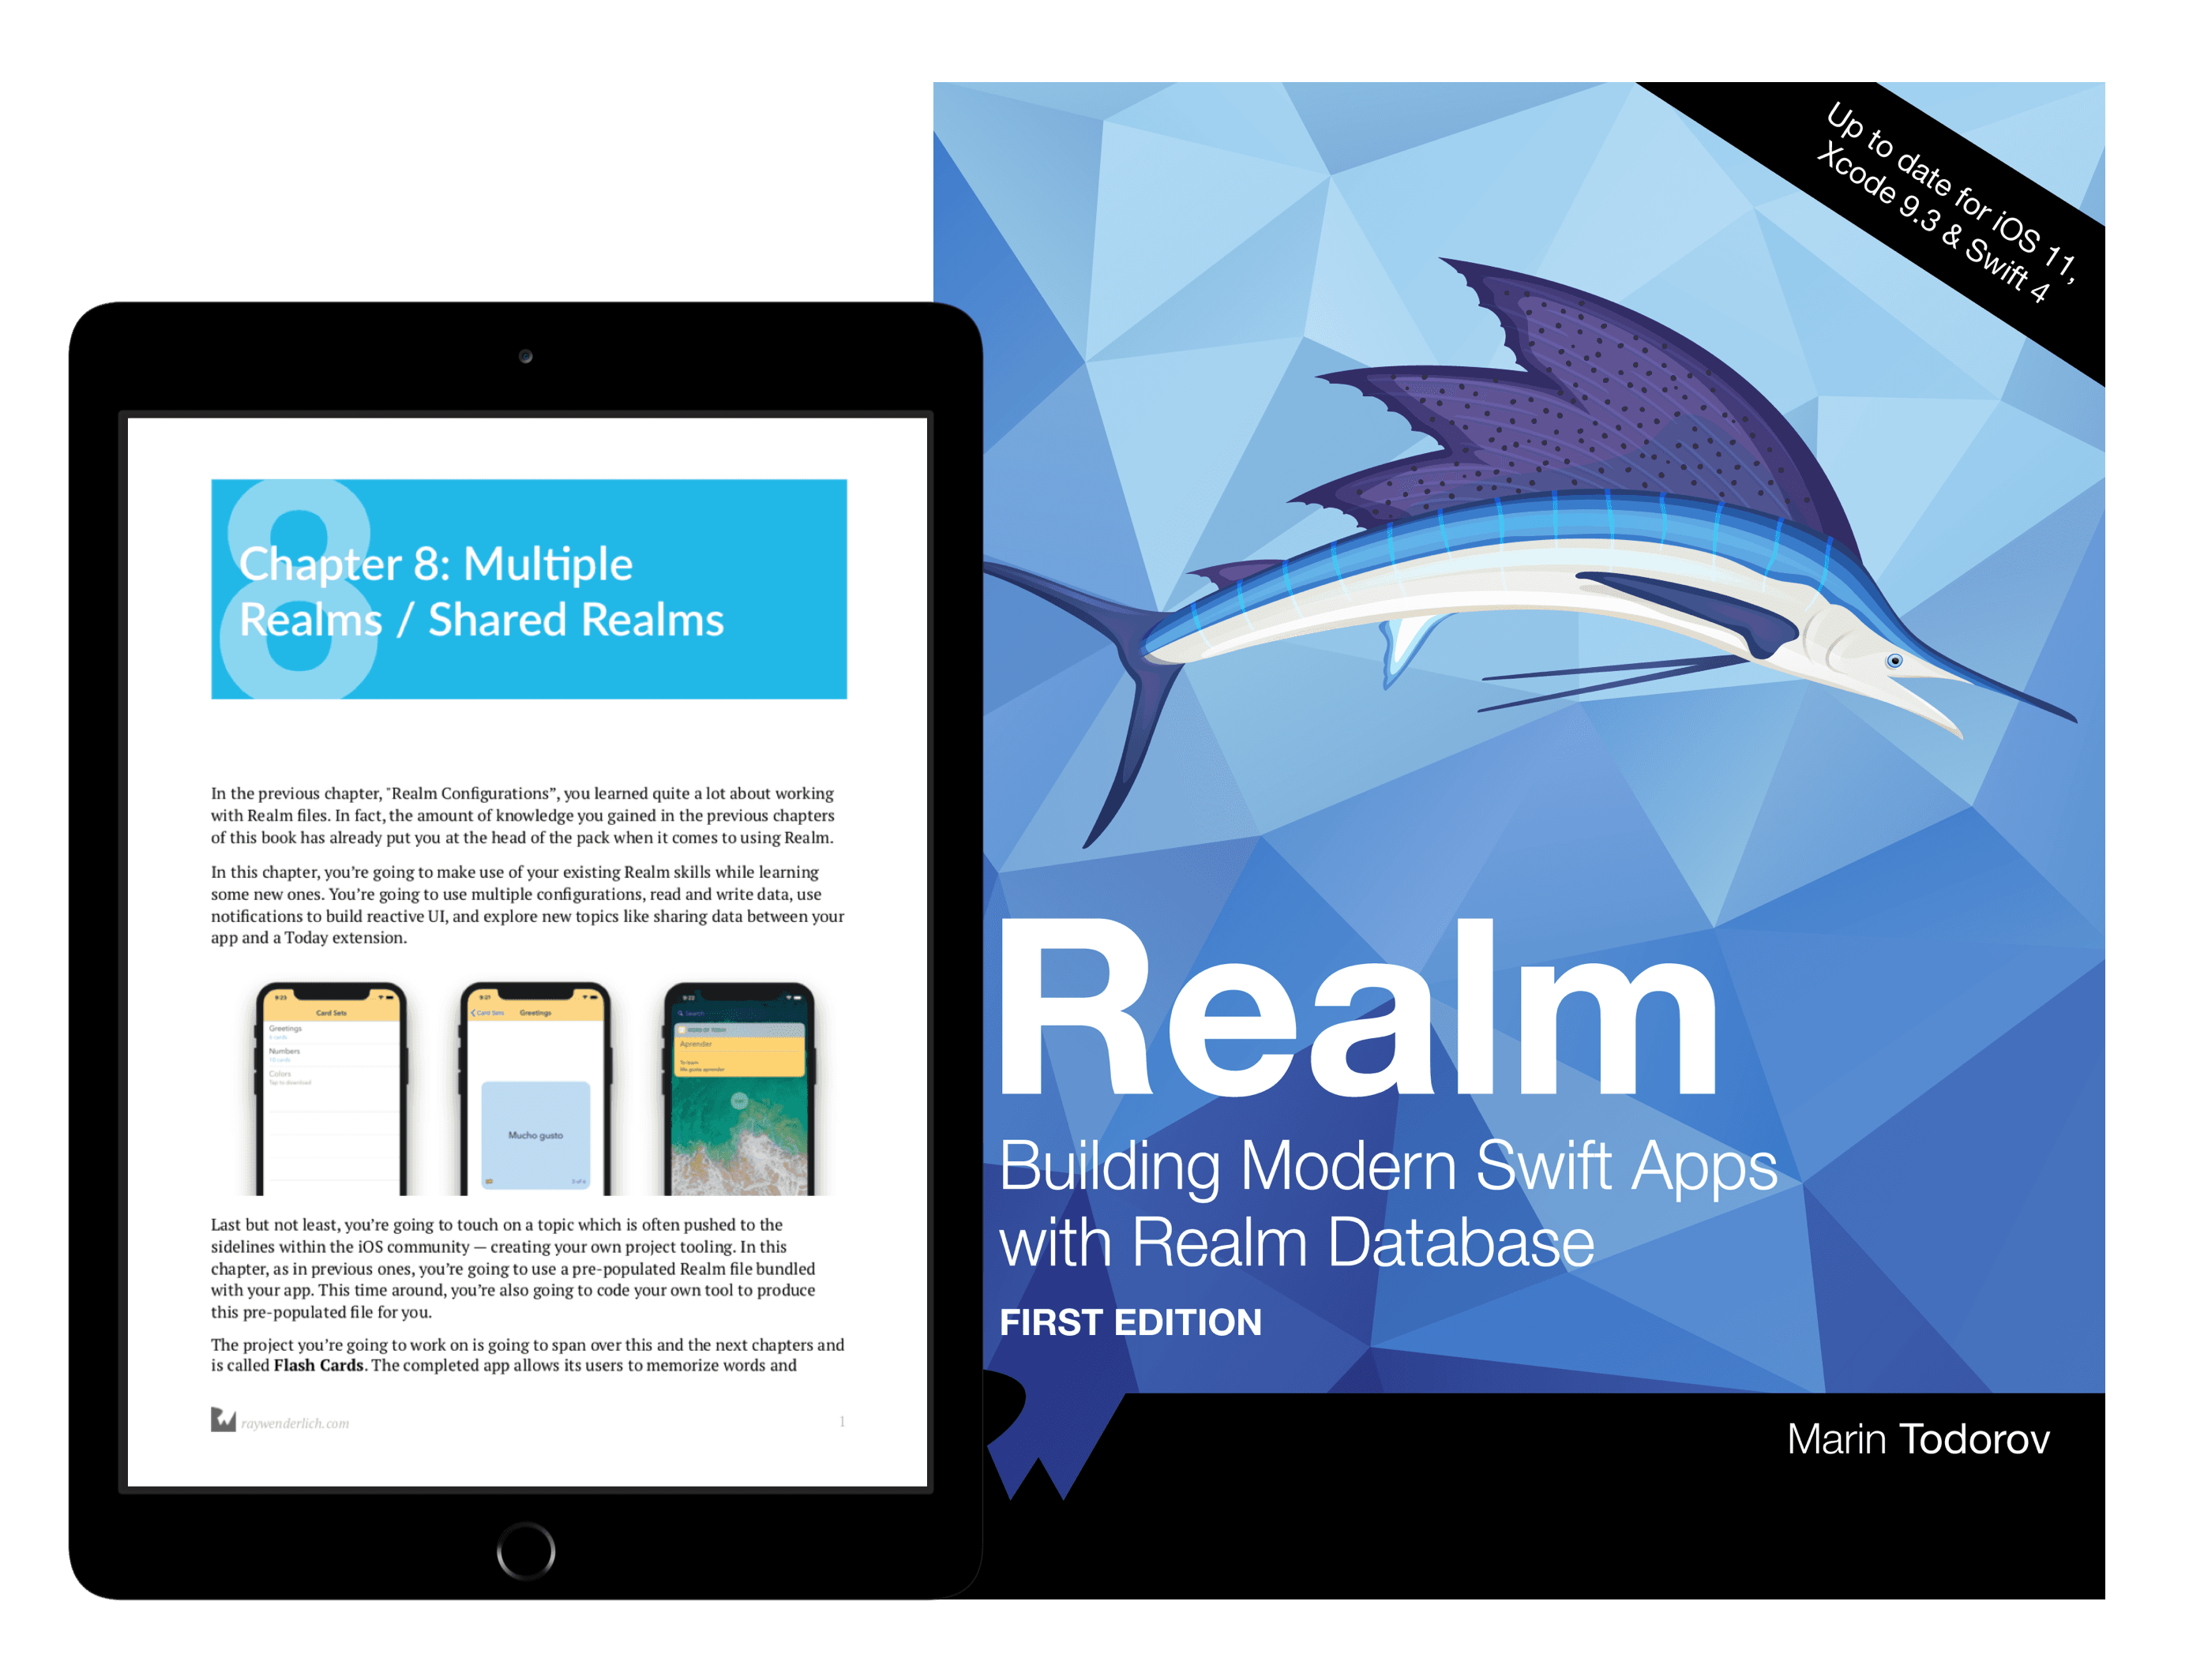 Realm: Building Modern Swift Apps with Realm Database